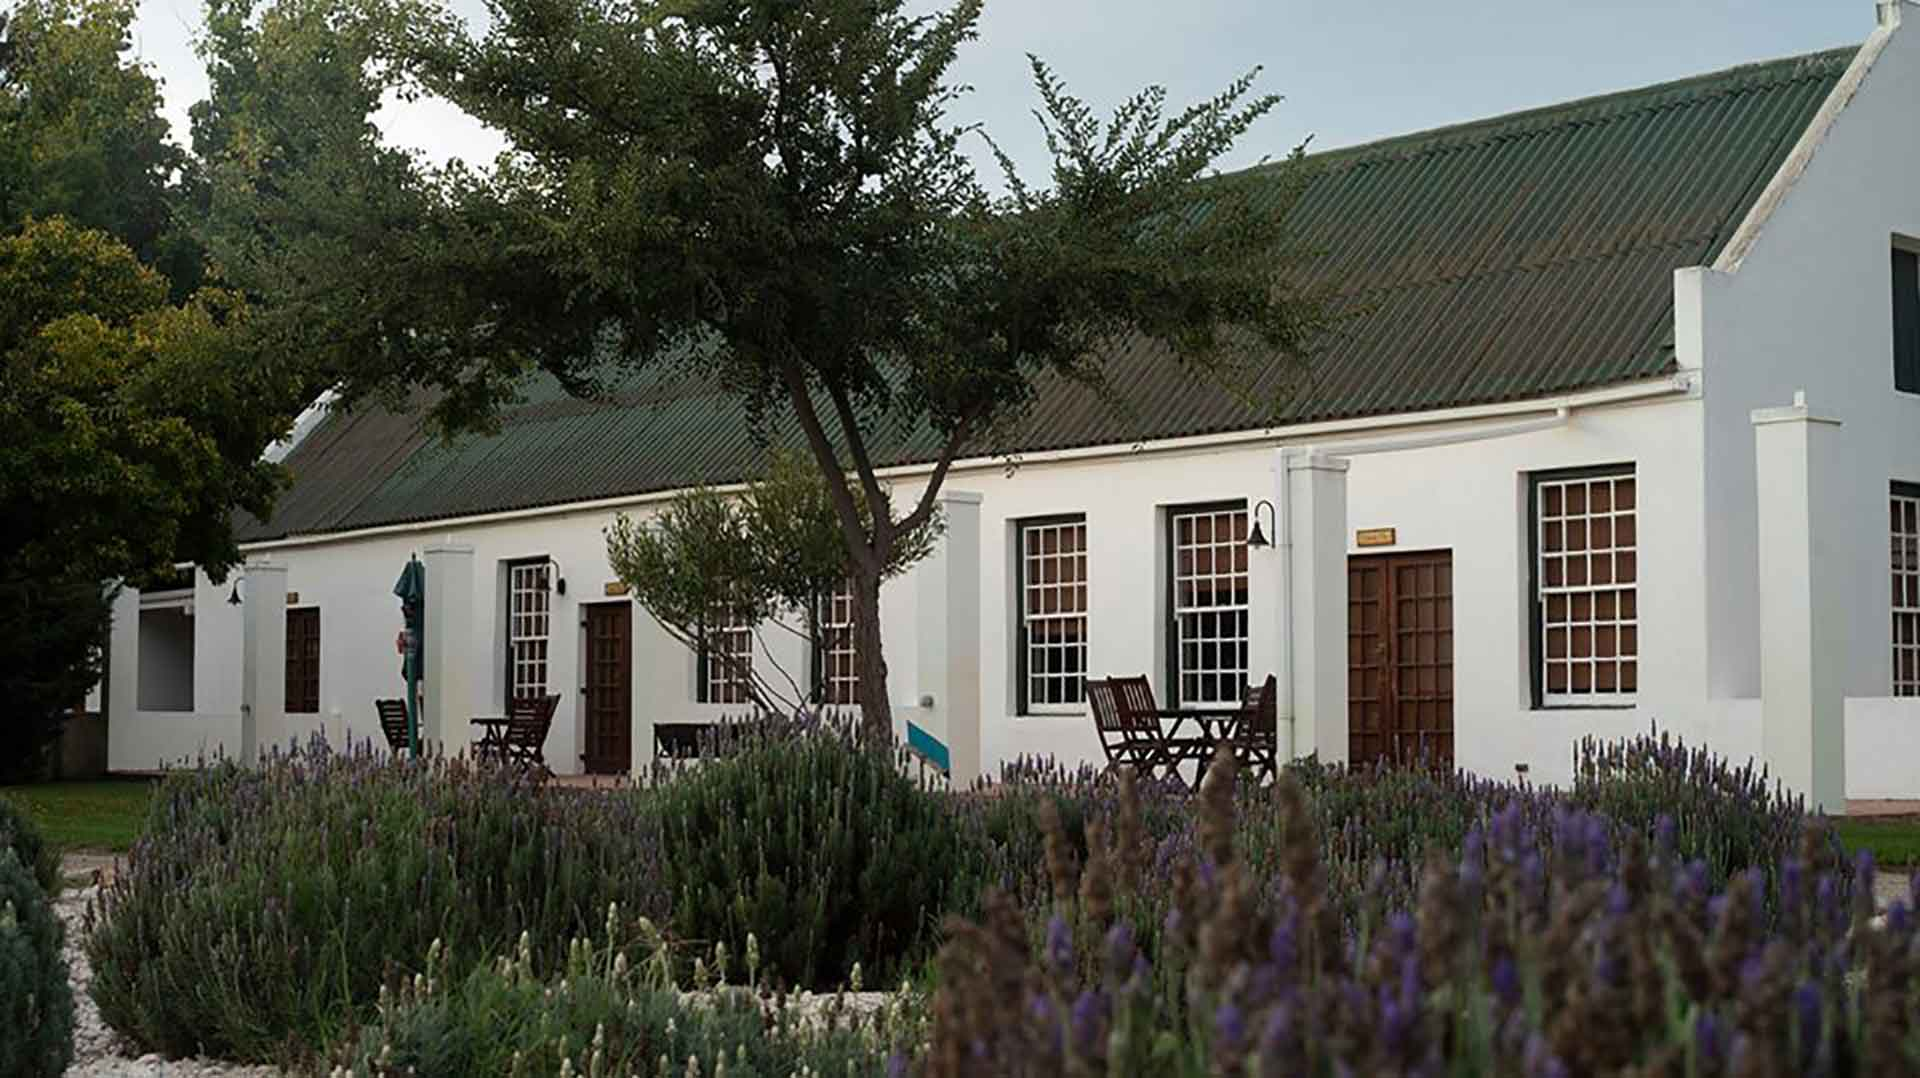 Accommodation, a lavender field in front of an old Cape Dutch building at Reeds Country Lodge wedding venue